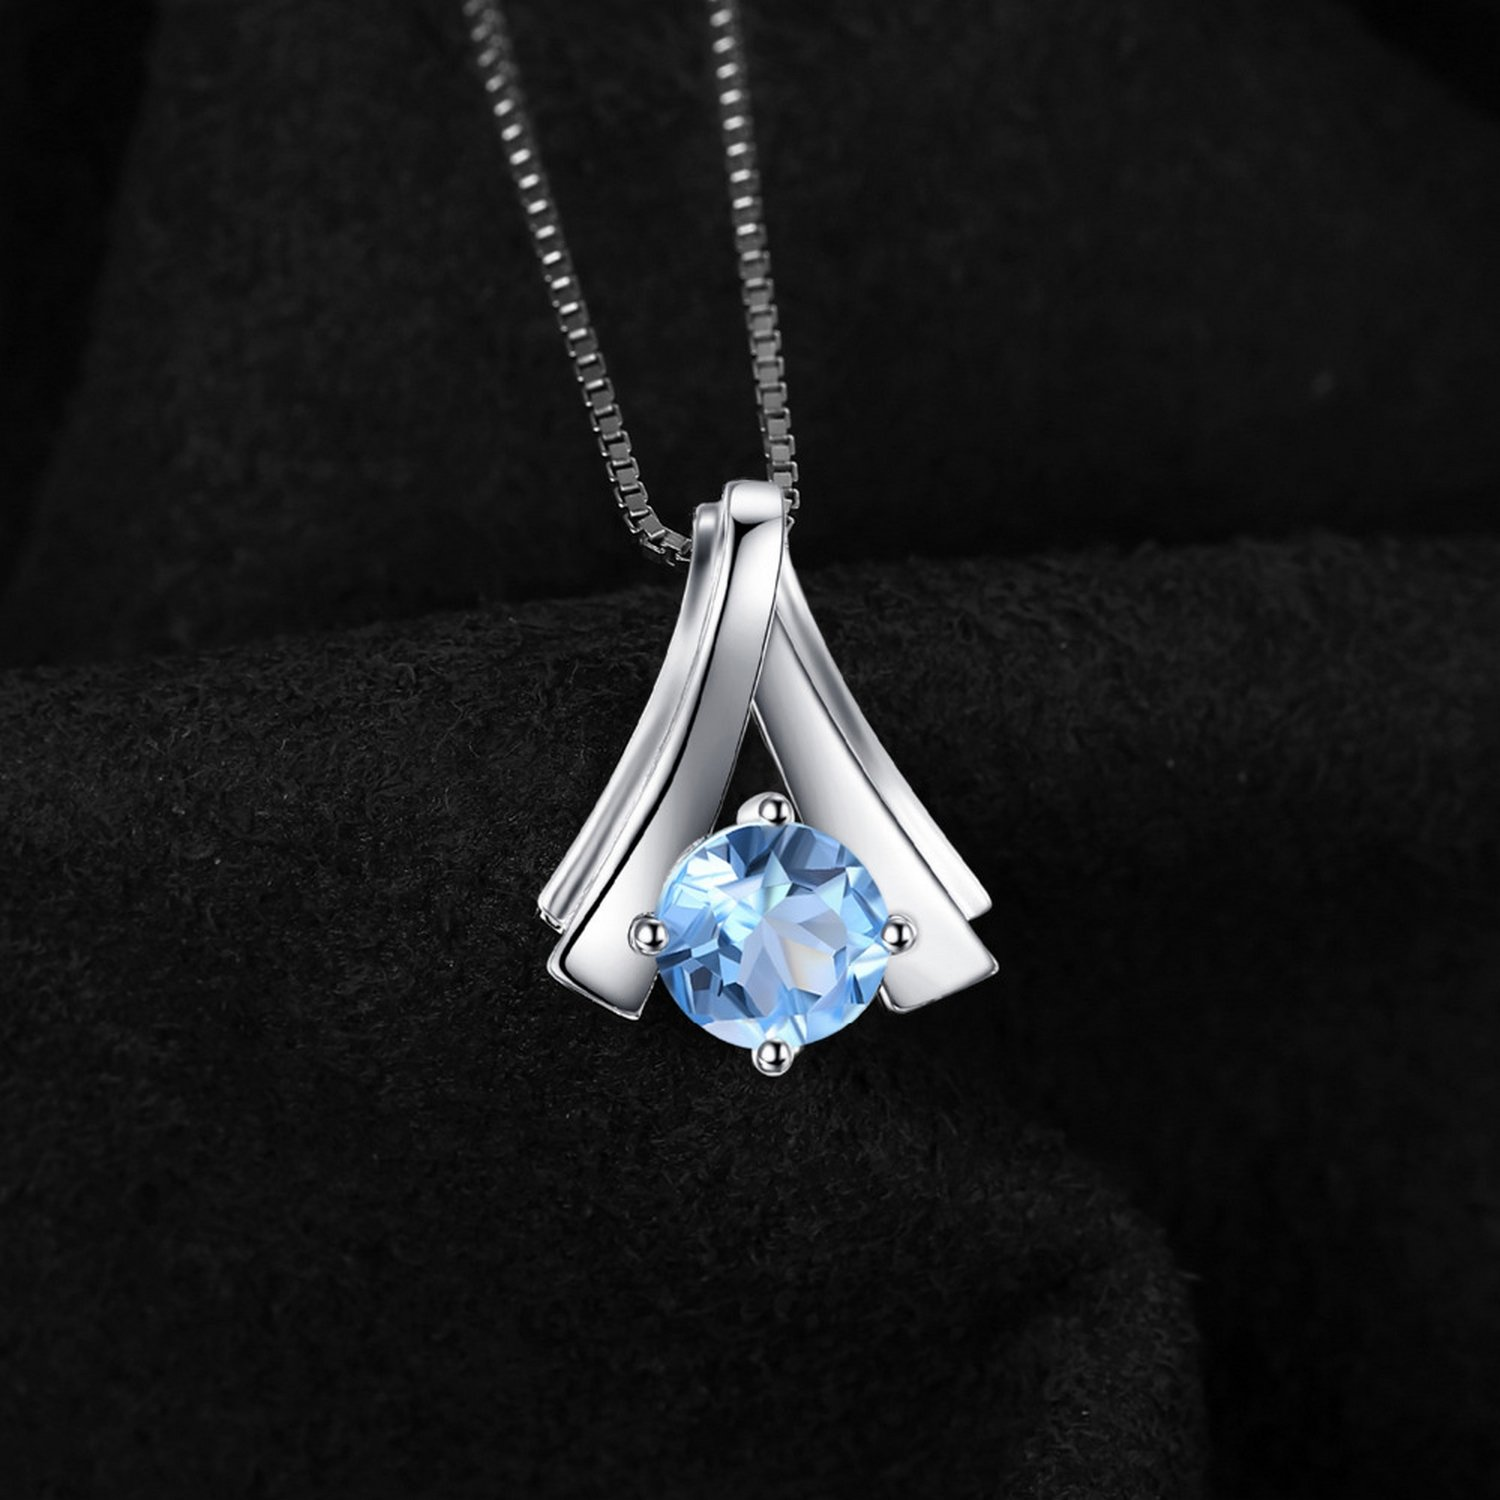 MMC Womens Necklaces Pendants 1ct Blue Topaz Gift for Friends Silver Jewelry